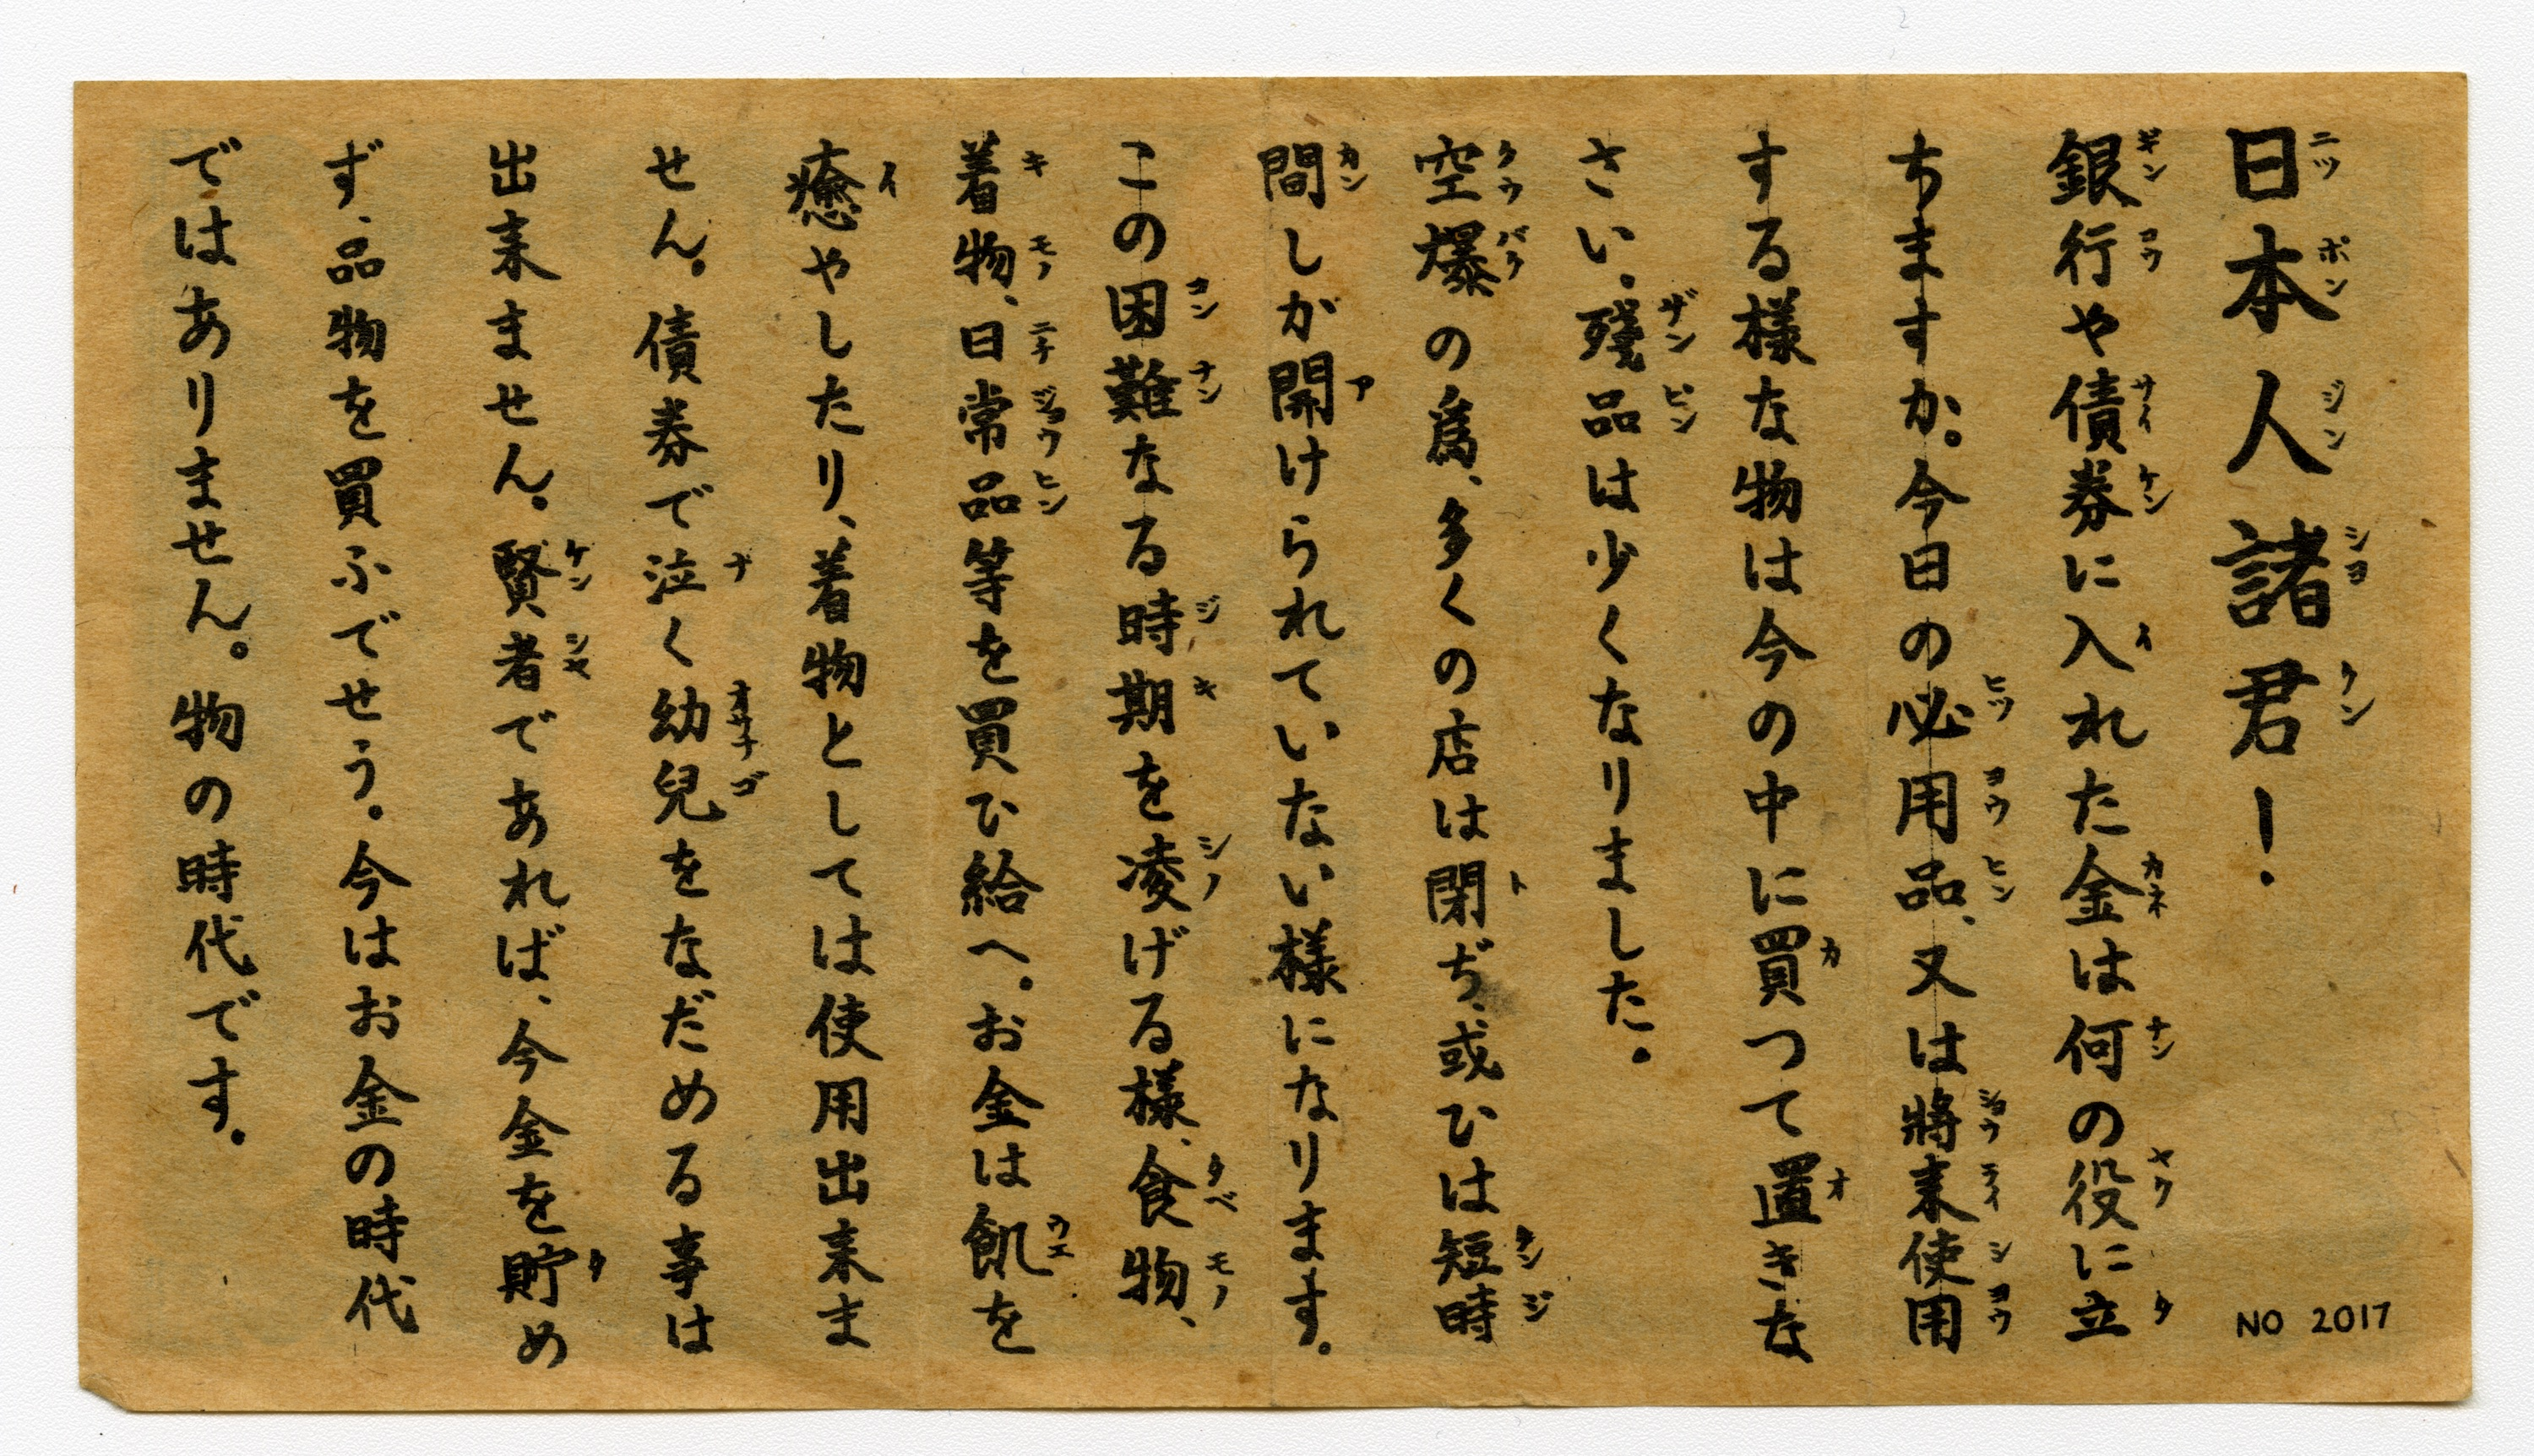 These leaflets, meant to warn Japanese civilians of impending firebombing and expose the weakness of the Japanese military to erode morale, were donated by Maurice Picheloup of the 39th bomb group. Picheloup took part in a night raid over Japan on August 14–15. Returning to base they received word of the end of the war.